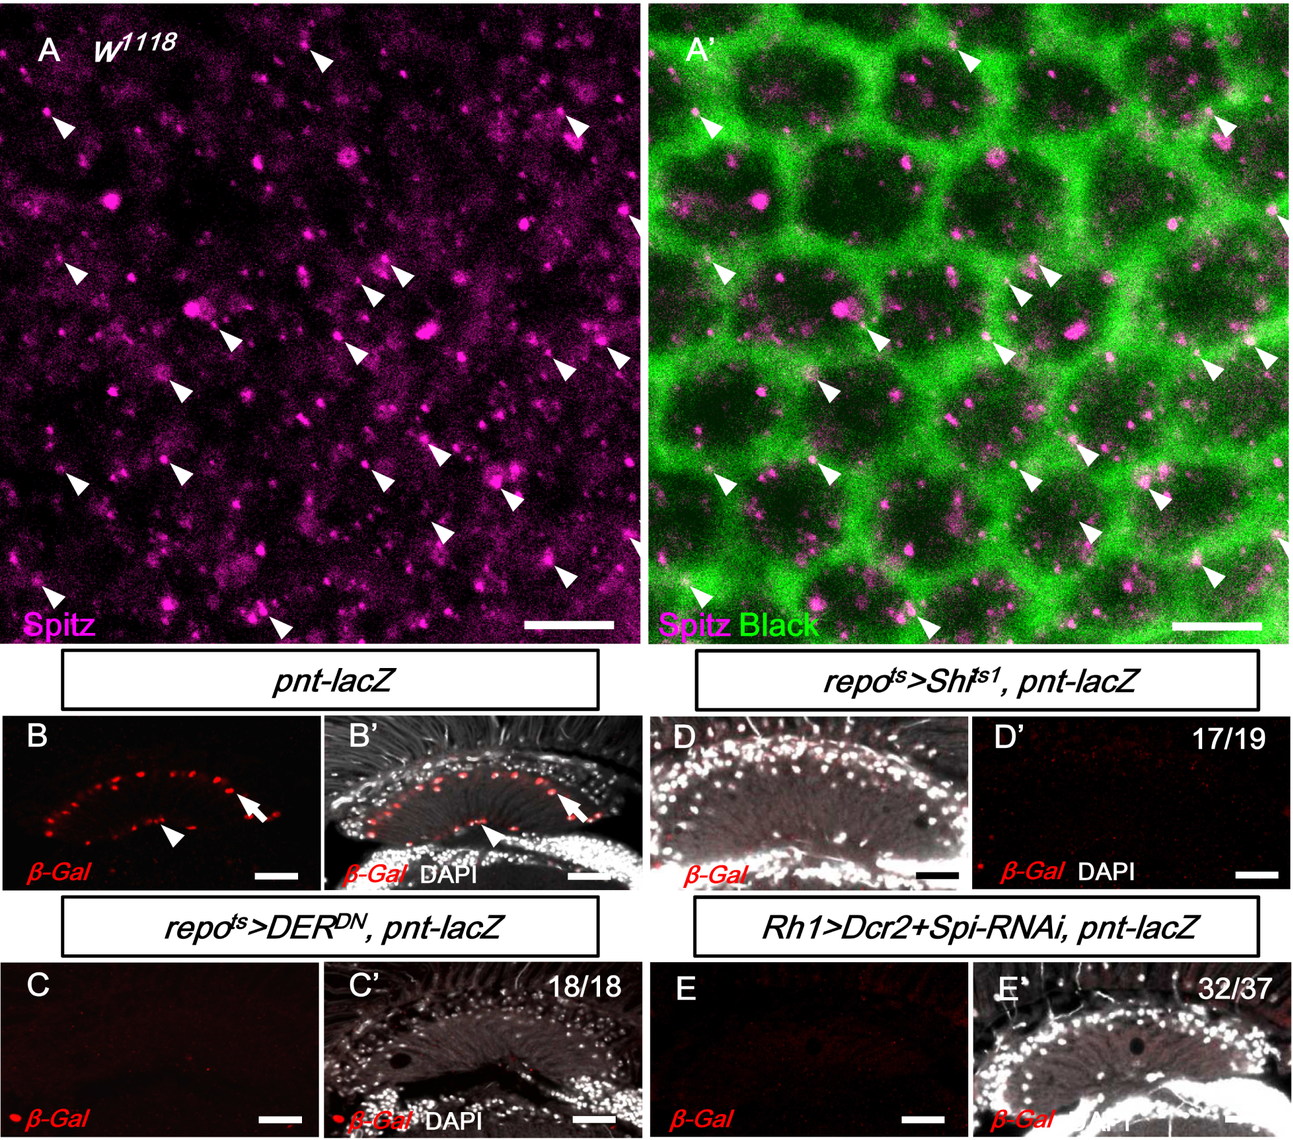 EGFR signaling in the lamina glia is dependent on Spitz from the R1-6 photoreceptors.